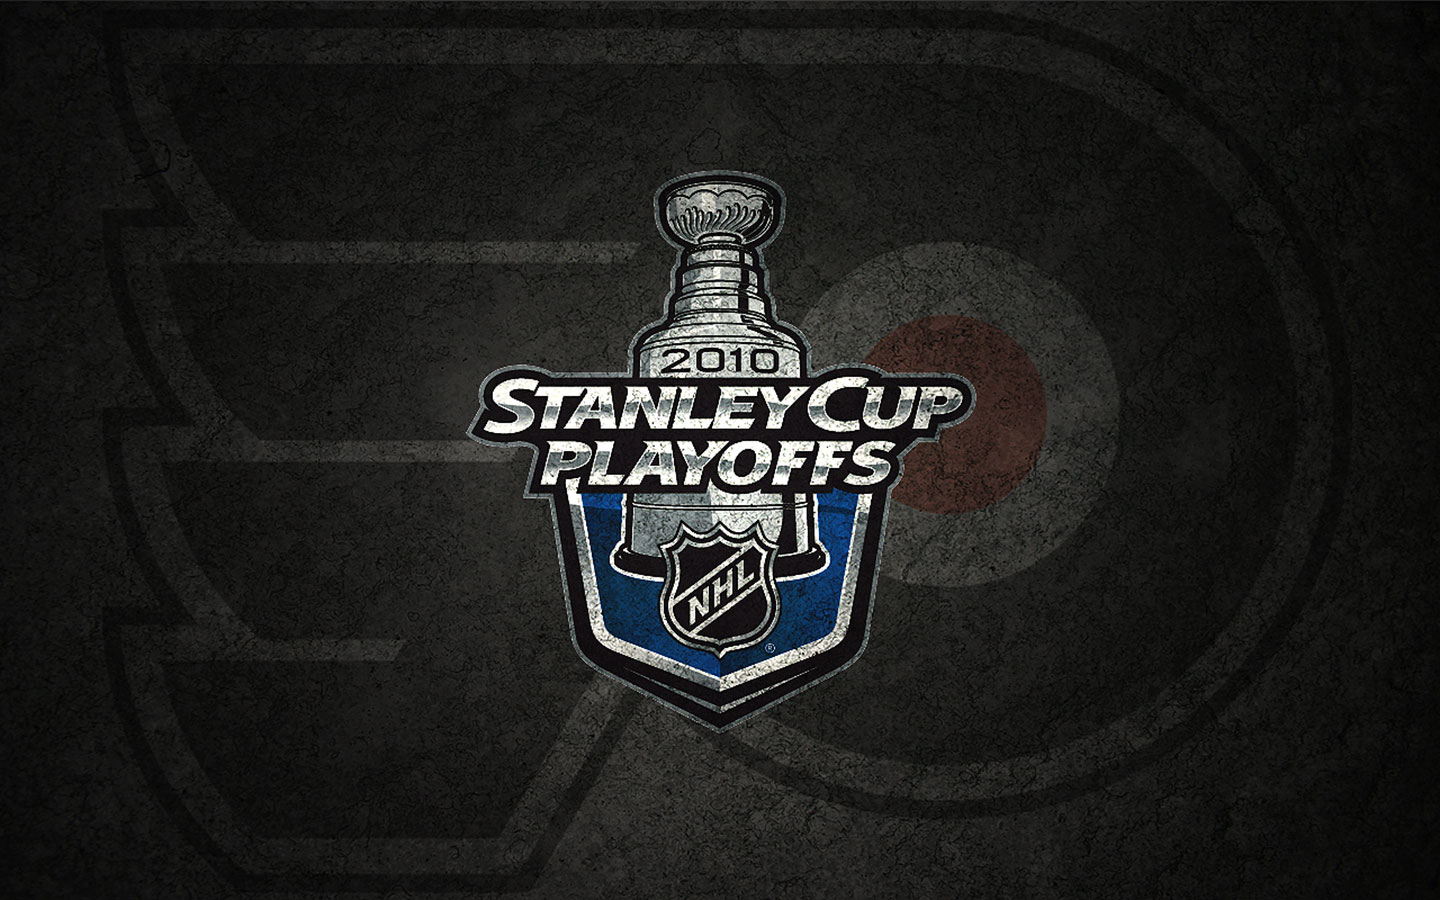 NHL Wallpapers   Philadelphia Flyers Playoffs 2010 wallpaper 1440x900